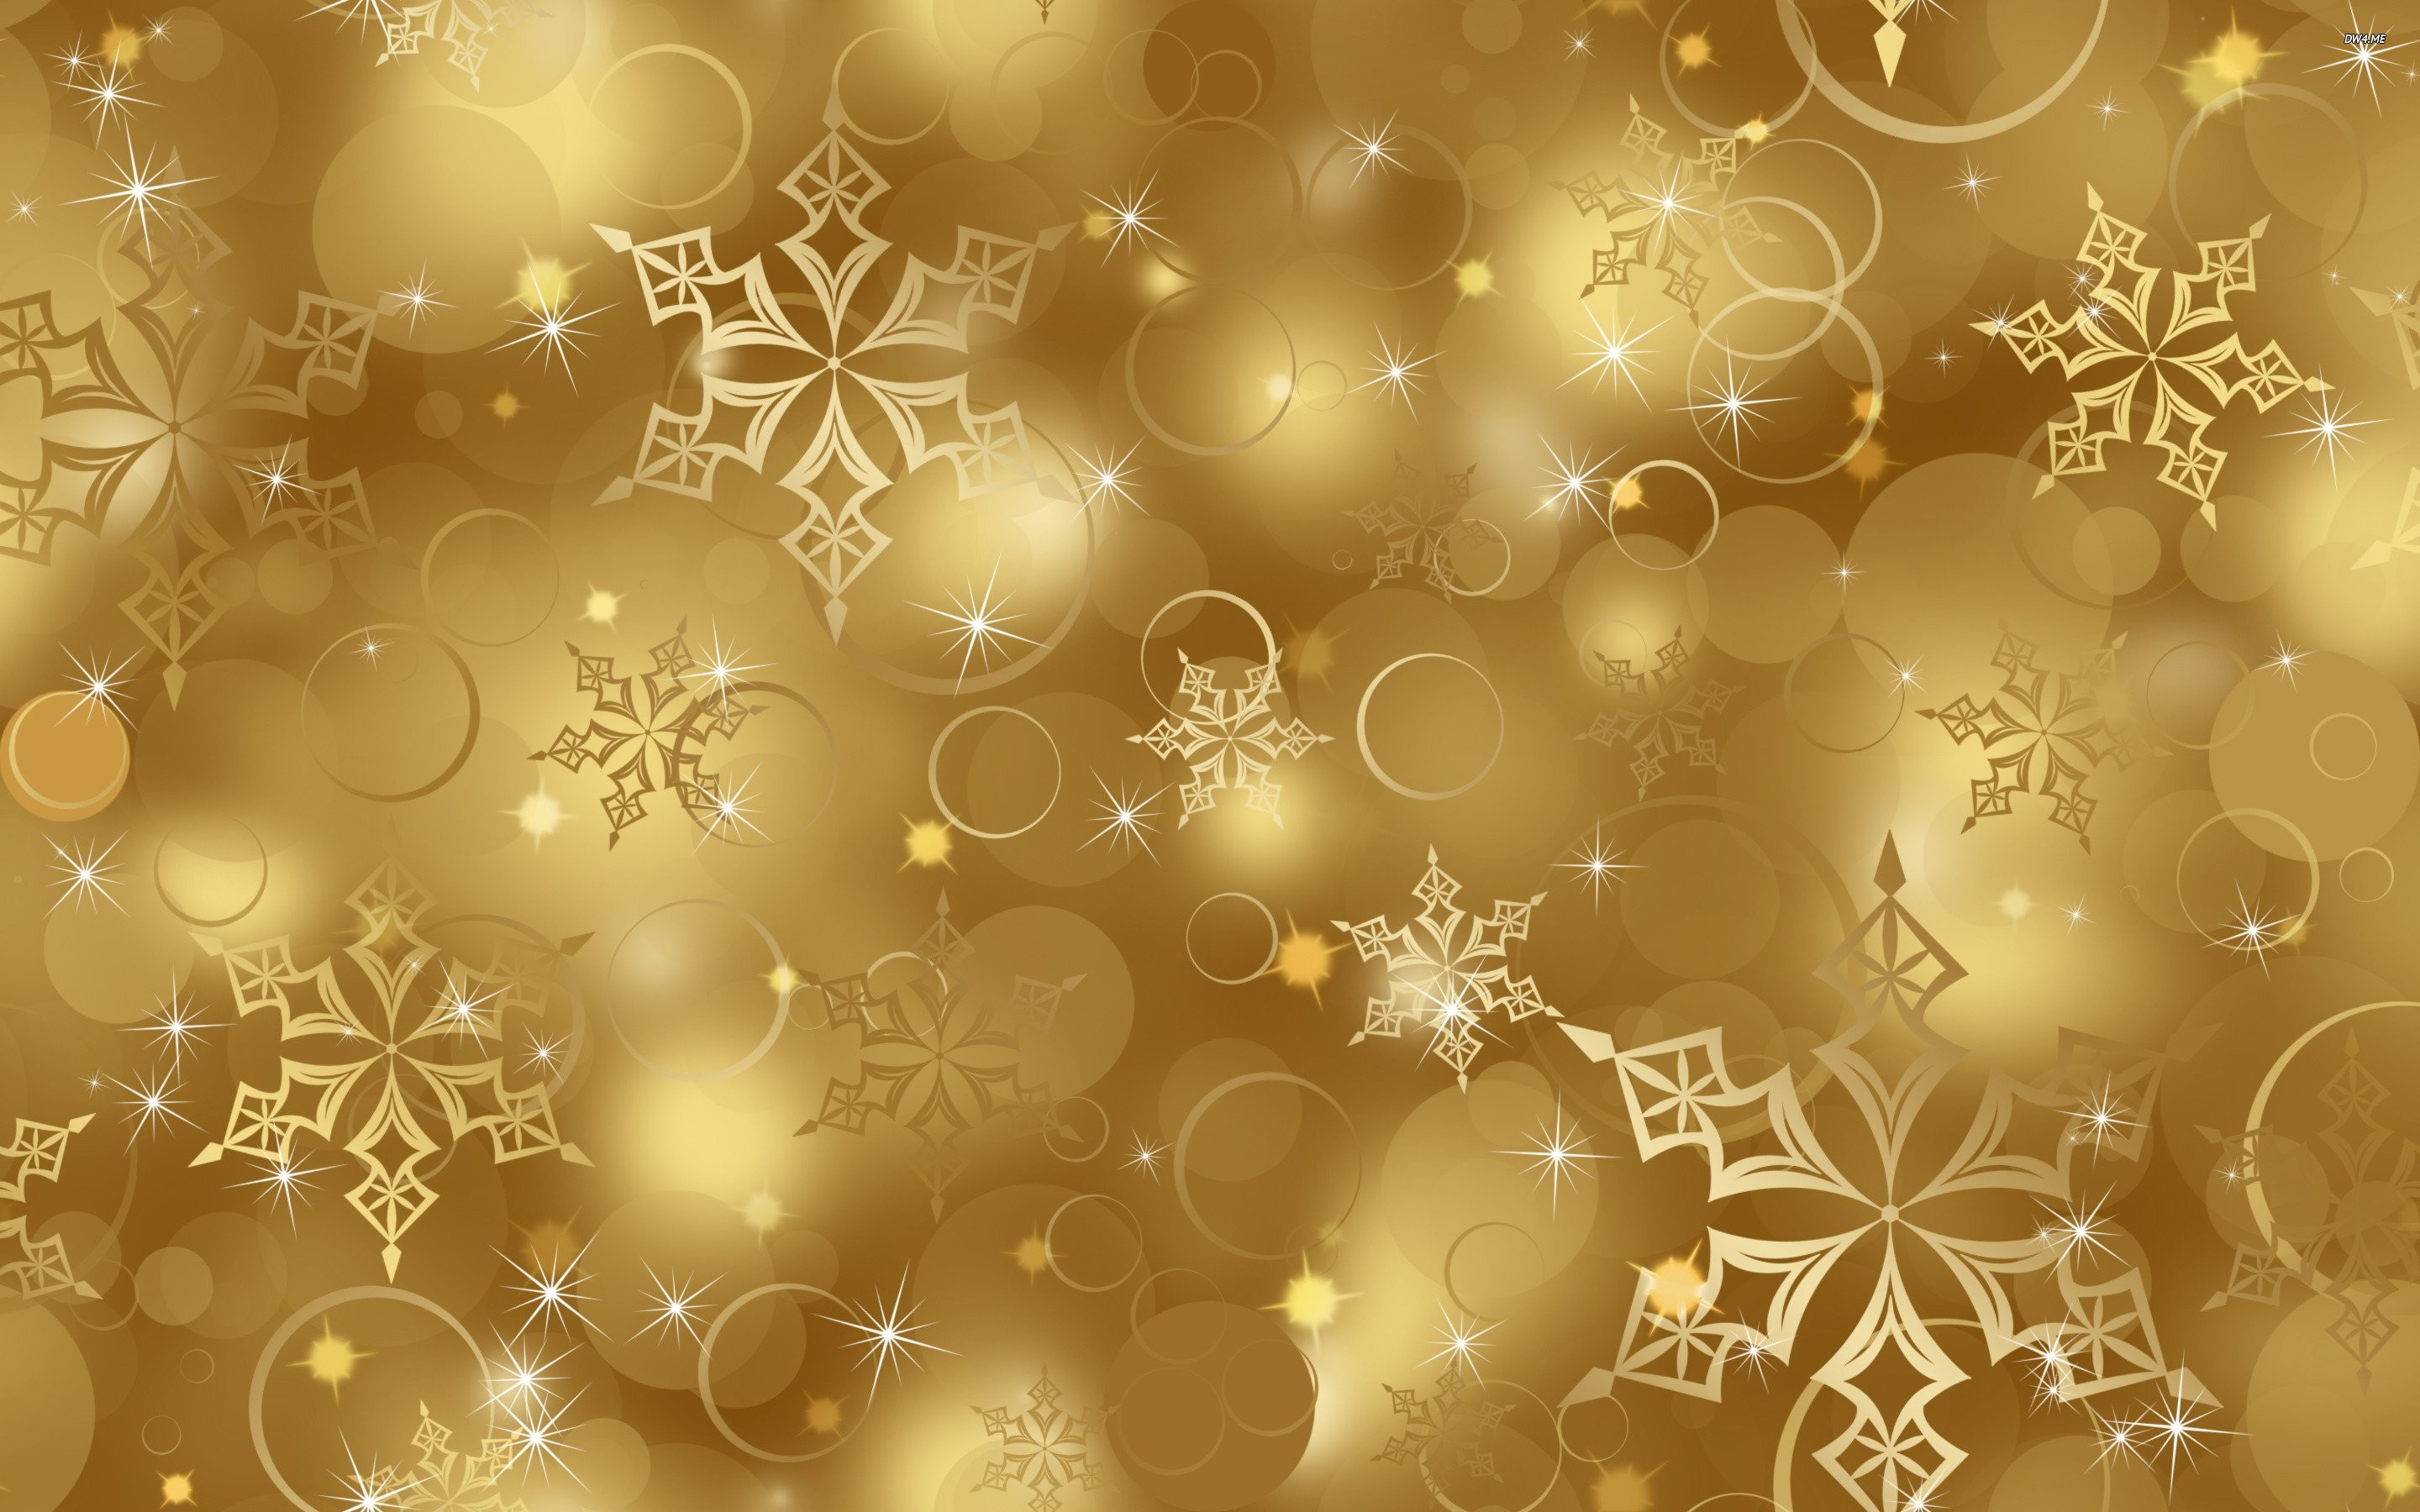 Gold pattern picture wallpapers.